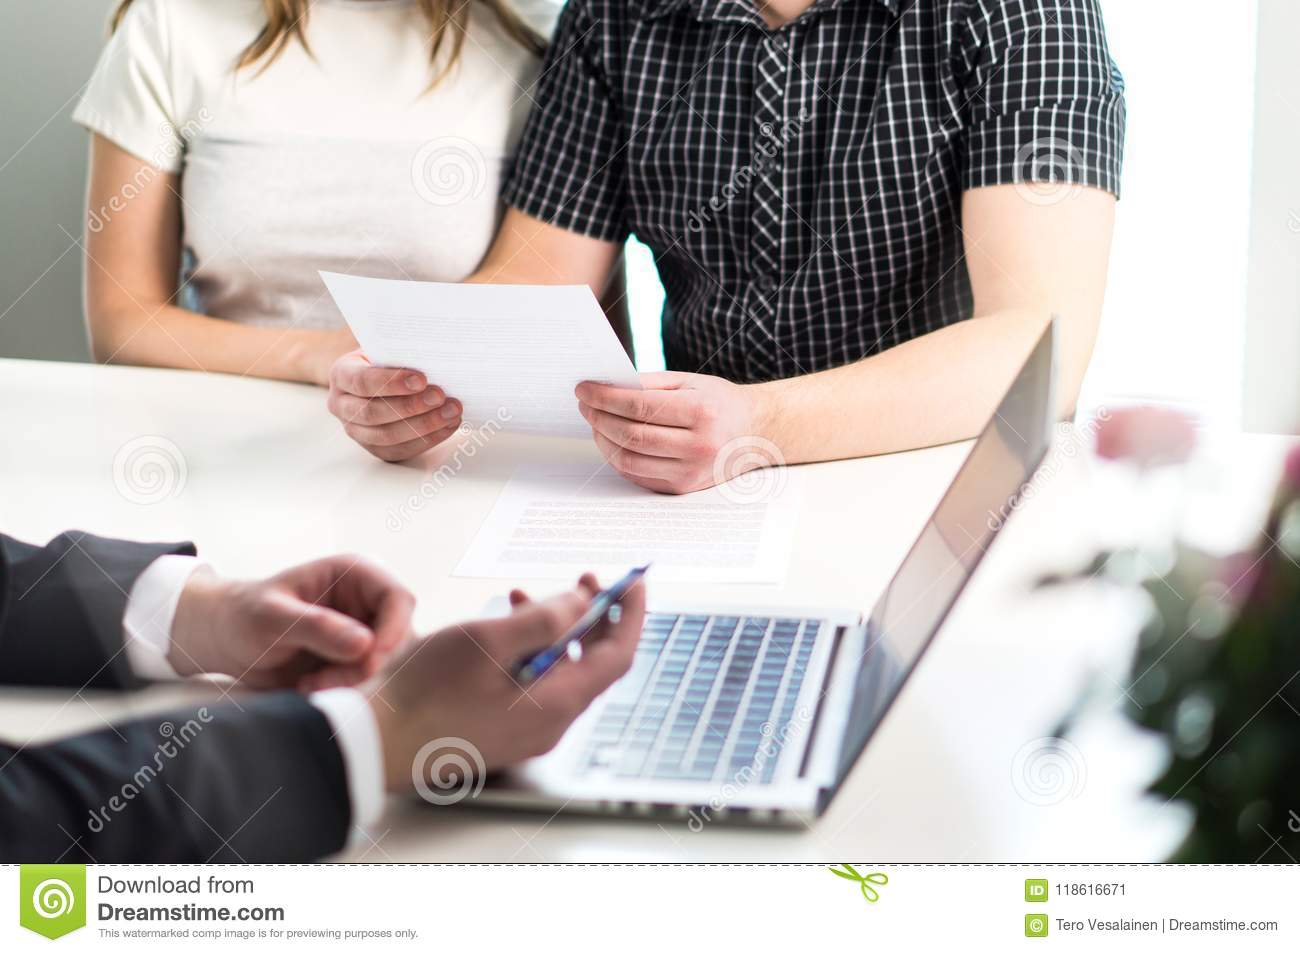 People having meeting about mortgage, bank loan, buying house.